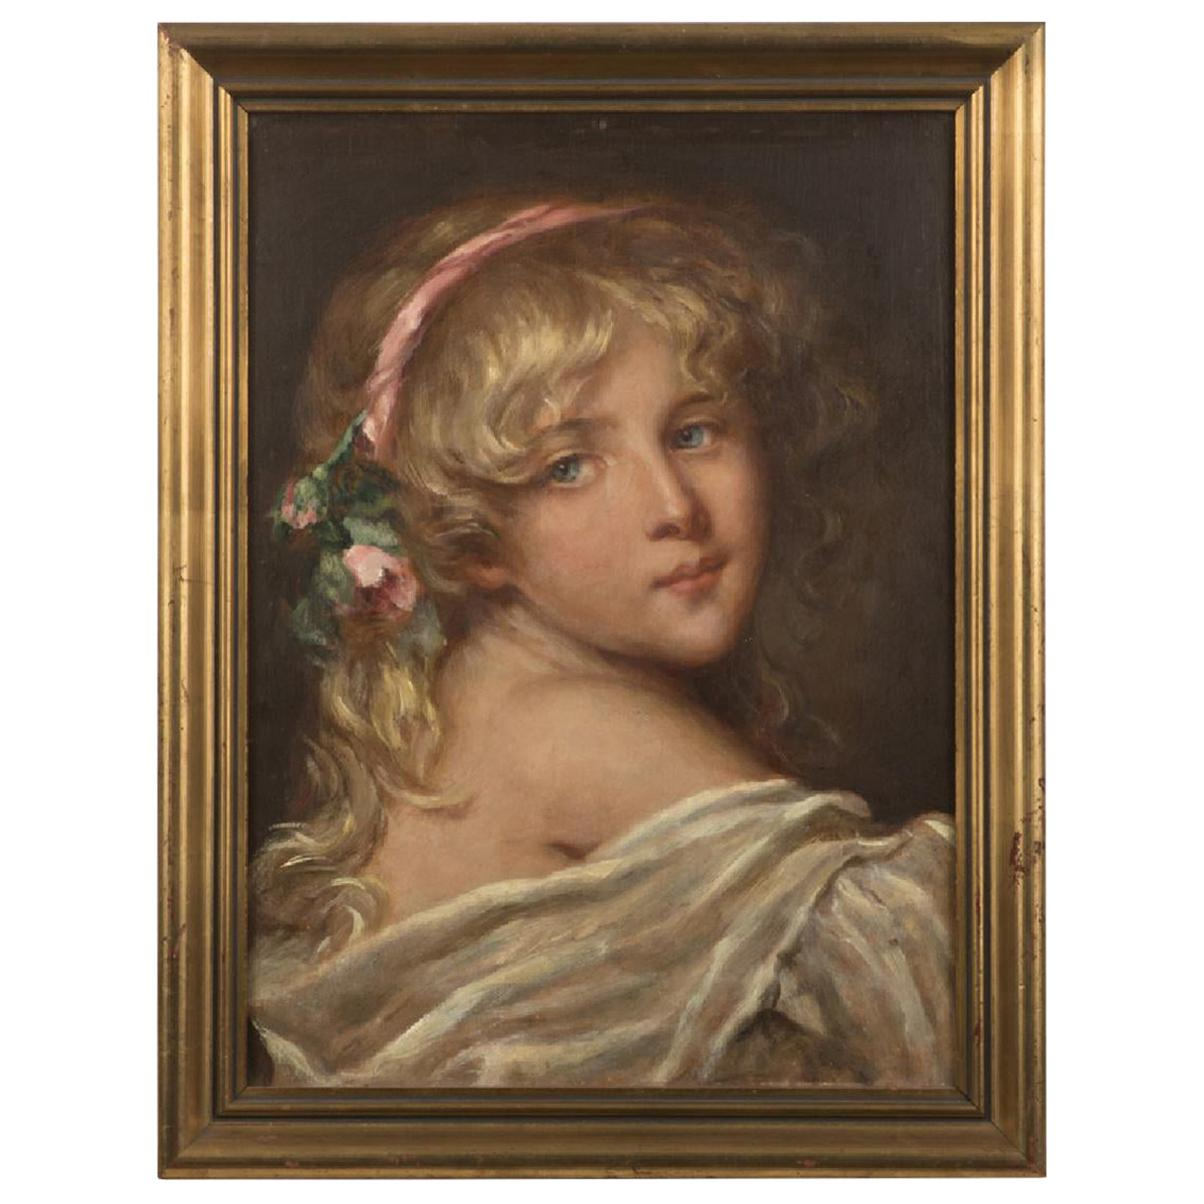 19th Century Swiss Oil on Board Painting of Blonde Girl